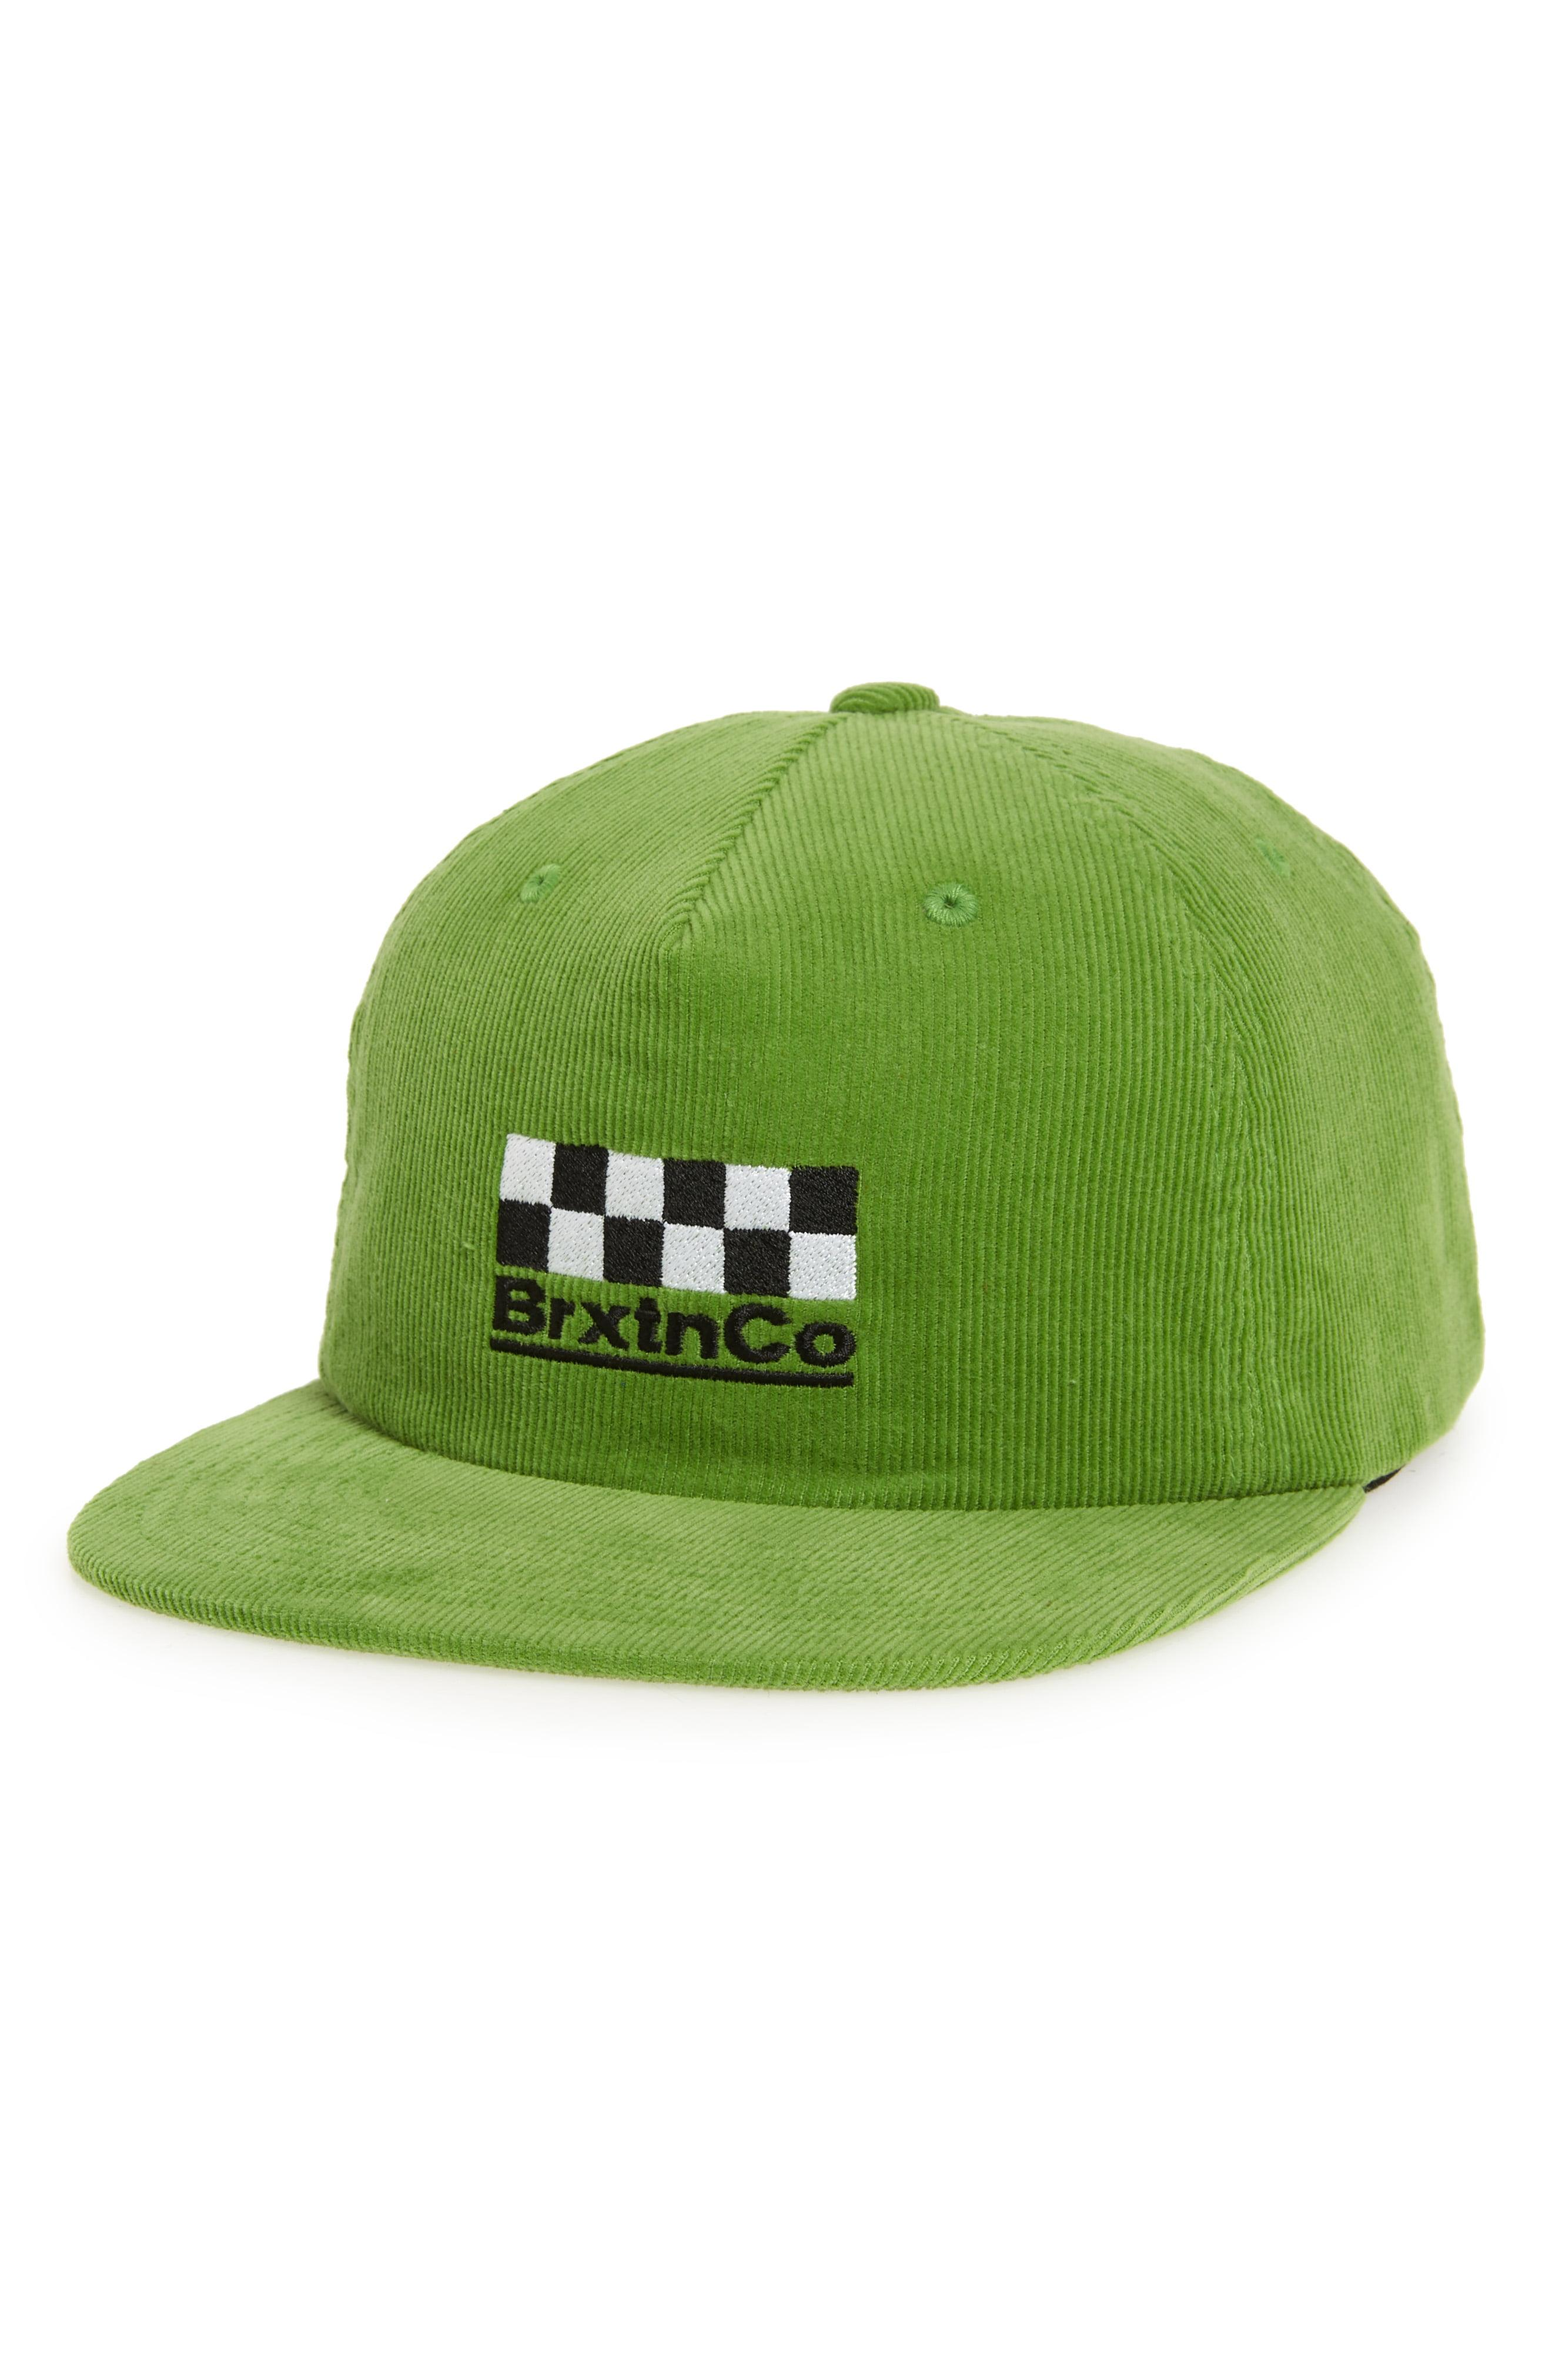 8a18606474ba2 Lyst - Brixton Burns Mp Snapback (washed Kelly) Caps in Green for ...